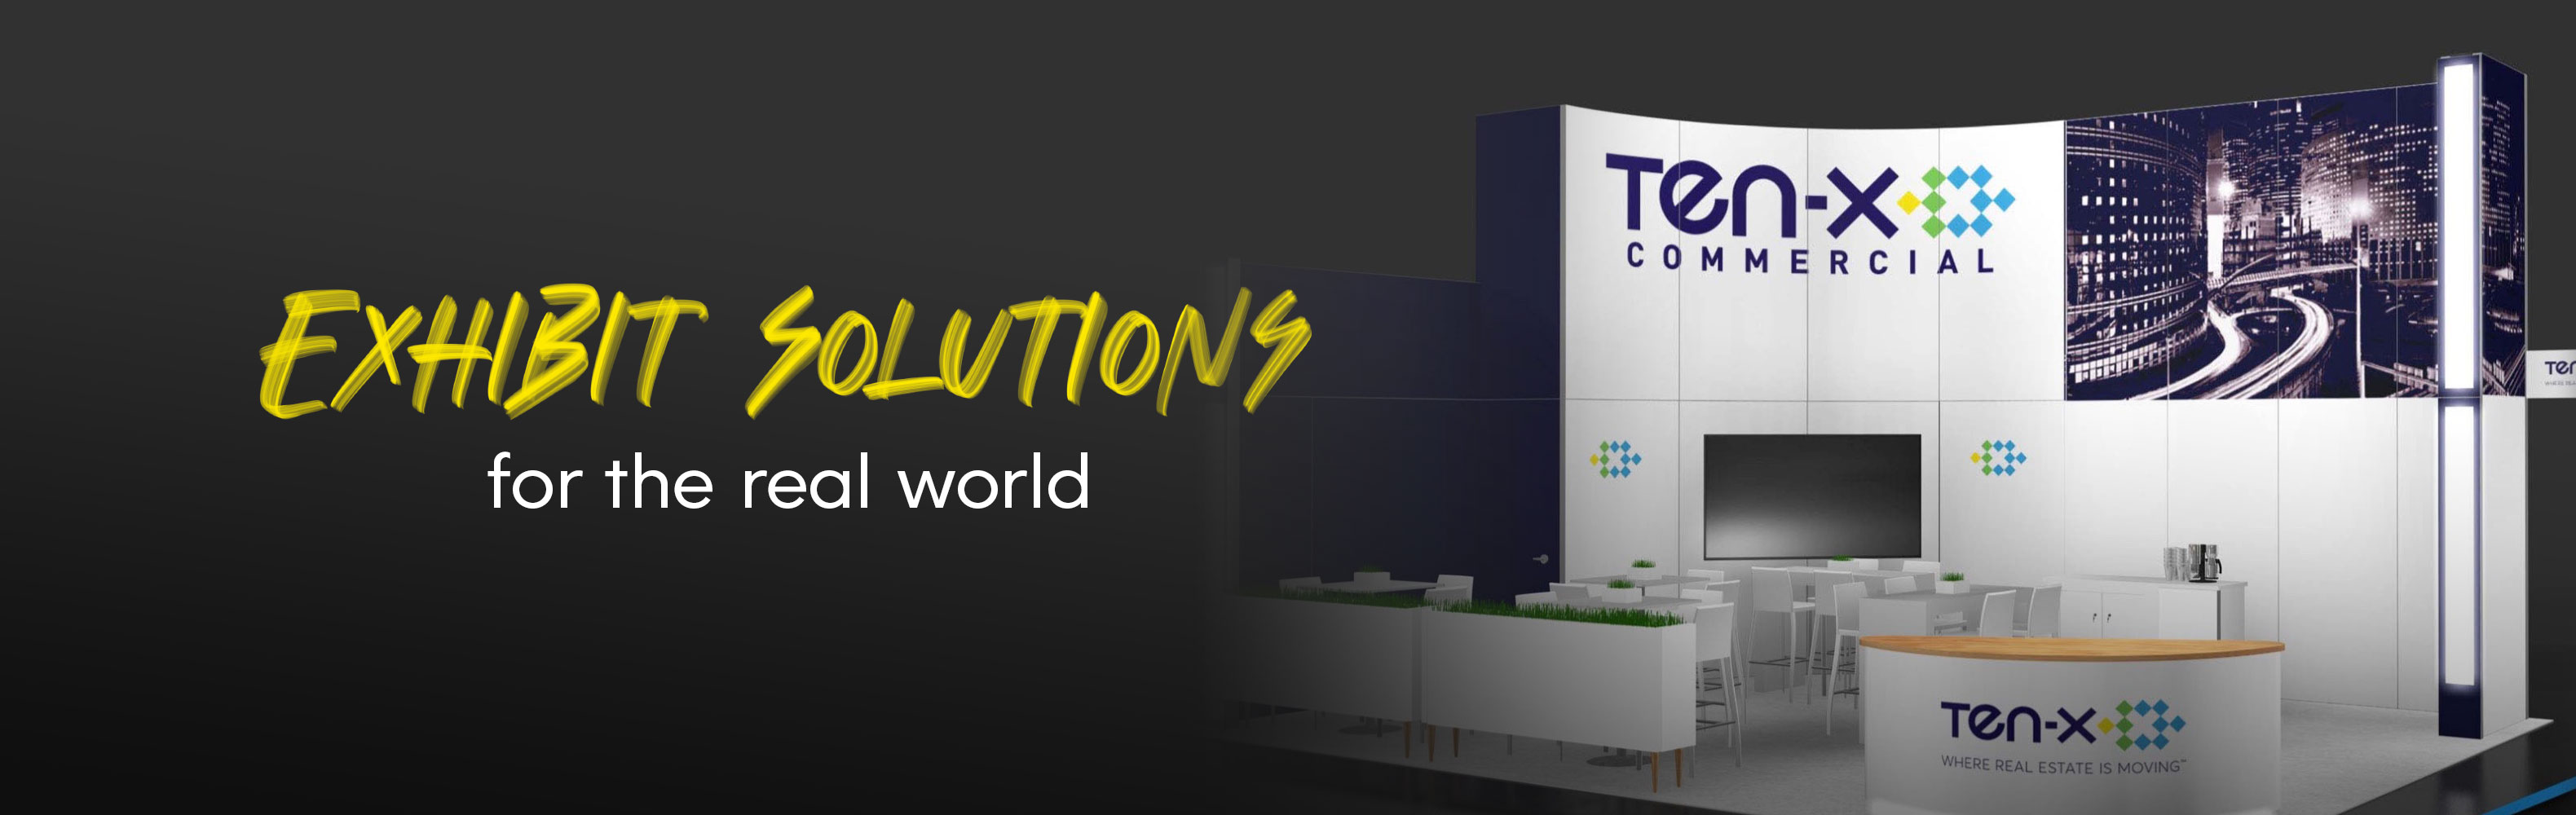 Exhibit Solutions for the real world